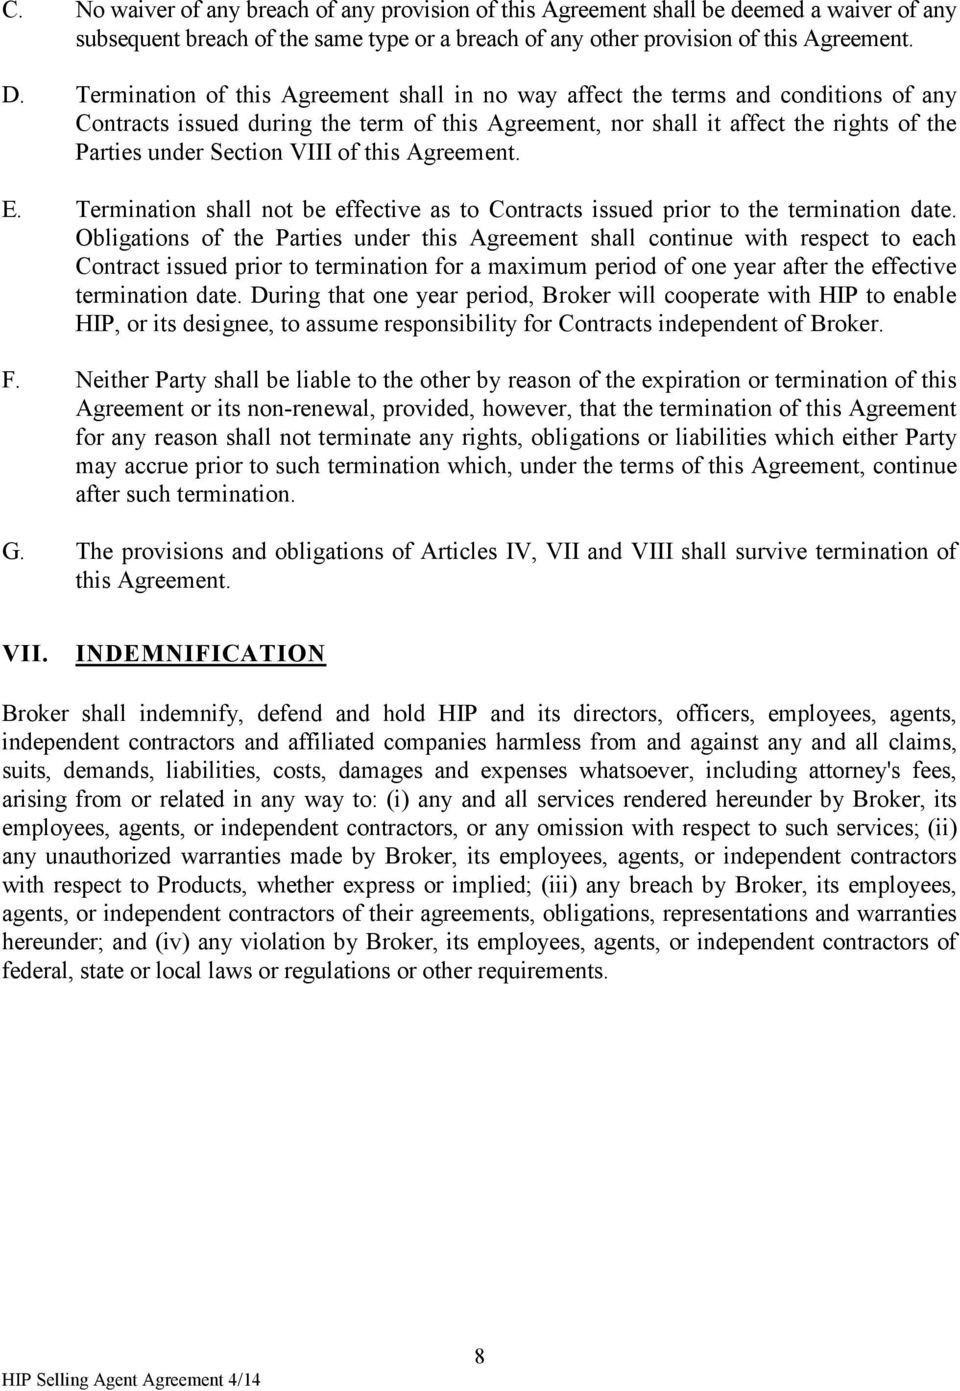 VIII of this Agreement. E. Termination shall not be effective as to Contracts issued prior to the termination date.